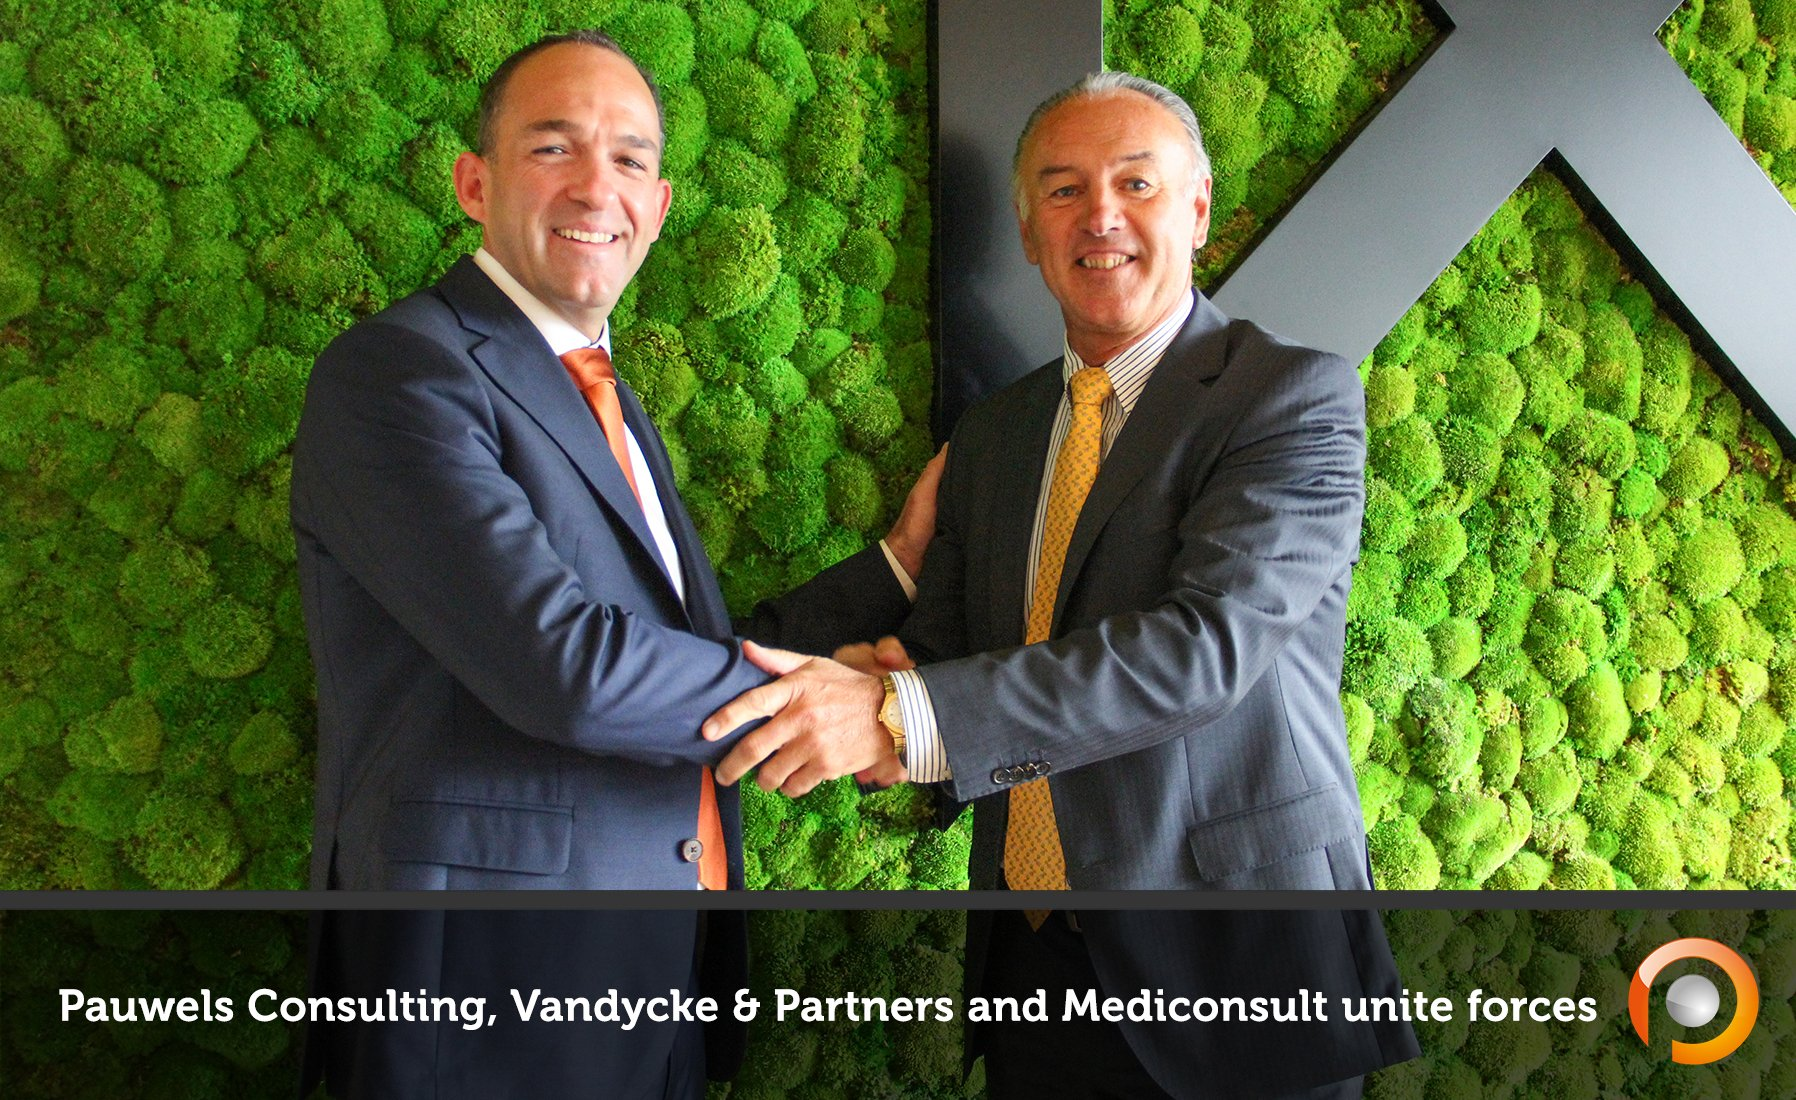 Pauwels Consulting, Vandycke and Partners and Mediconsult unite forces